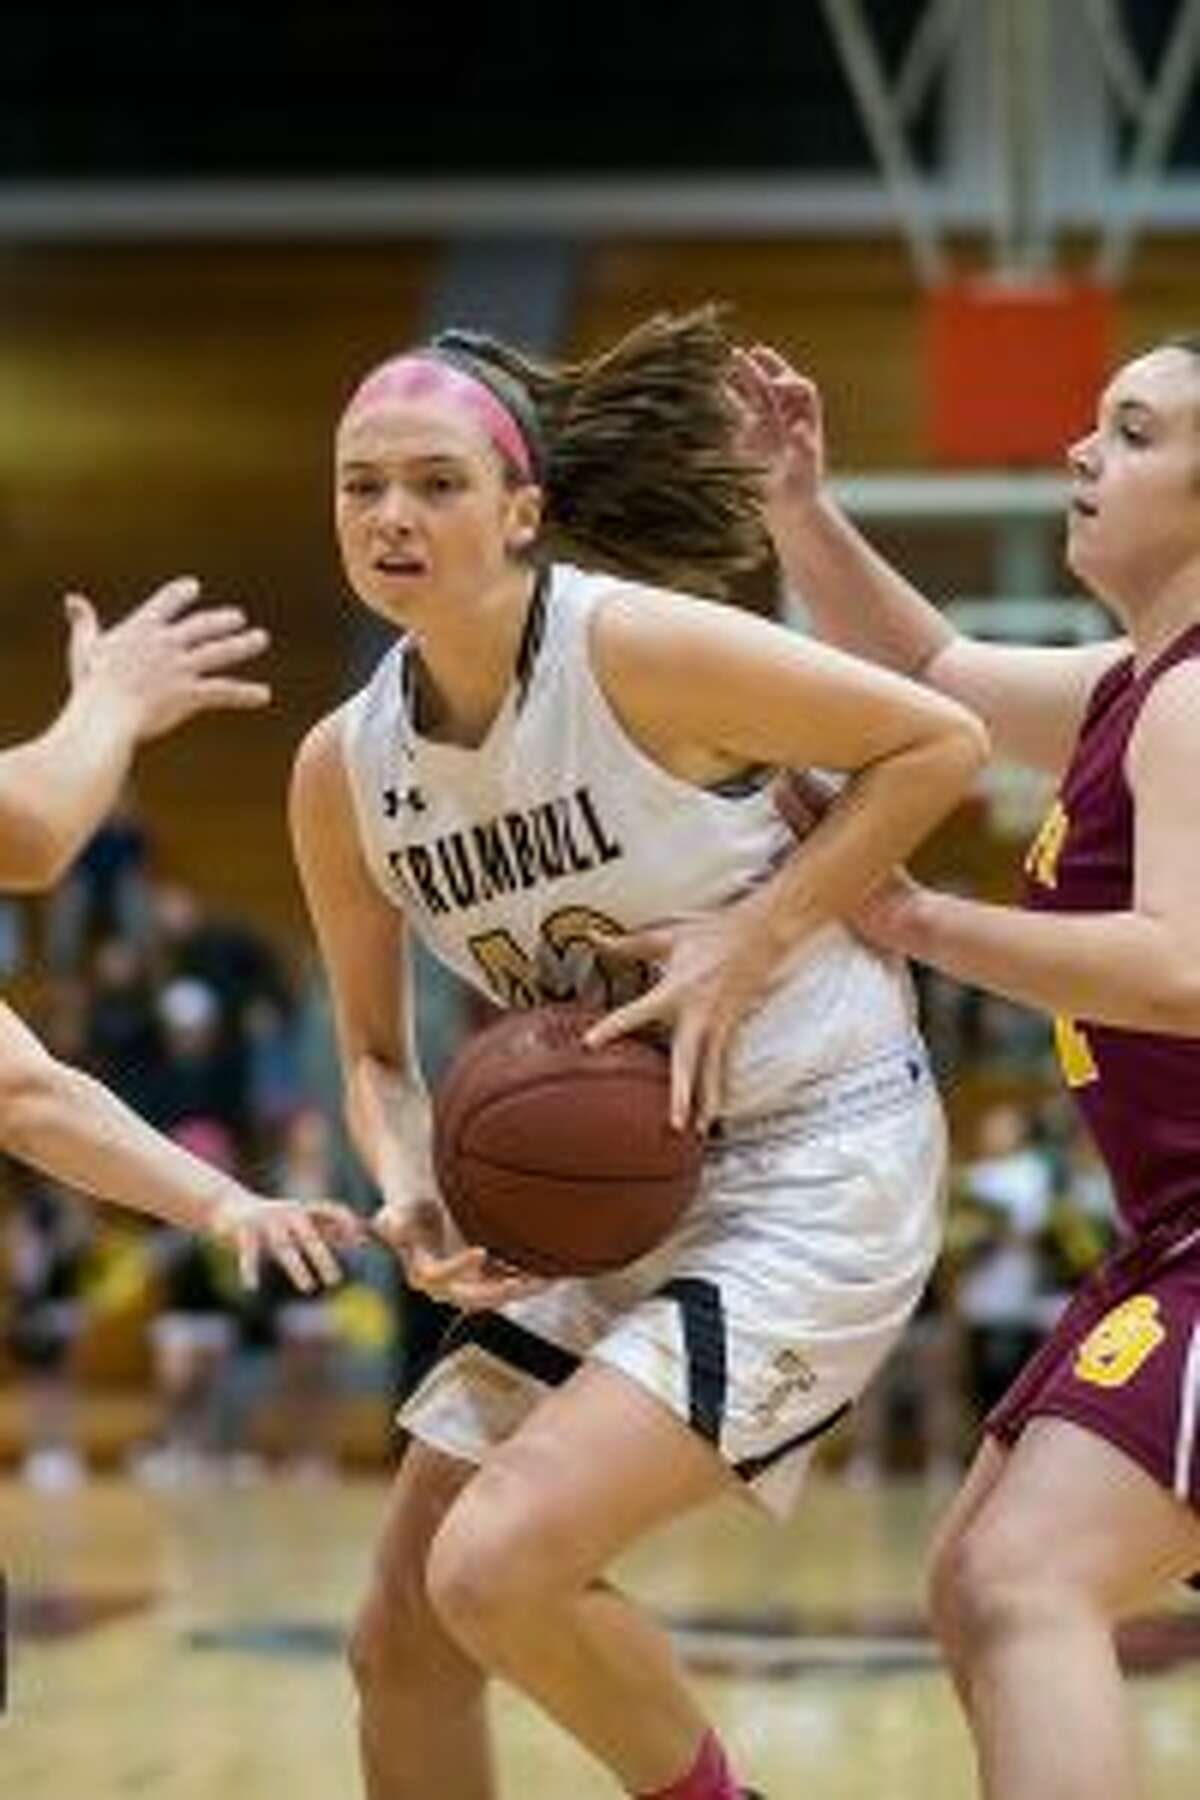 Trumbull High's Brady Lynch, Aisling Maguire and Julie Keckler have led the Eagles to 10-consecutive wins. - David G. Whitham photo